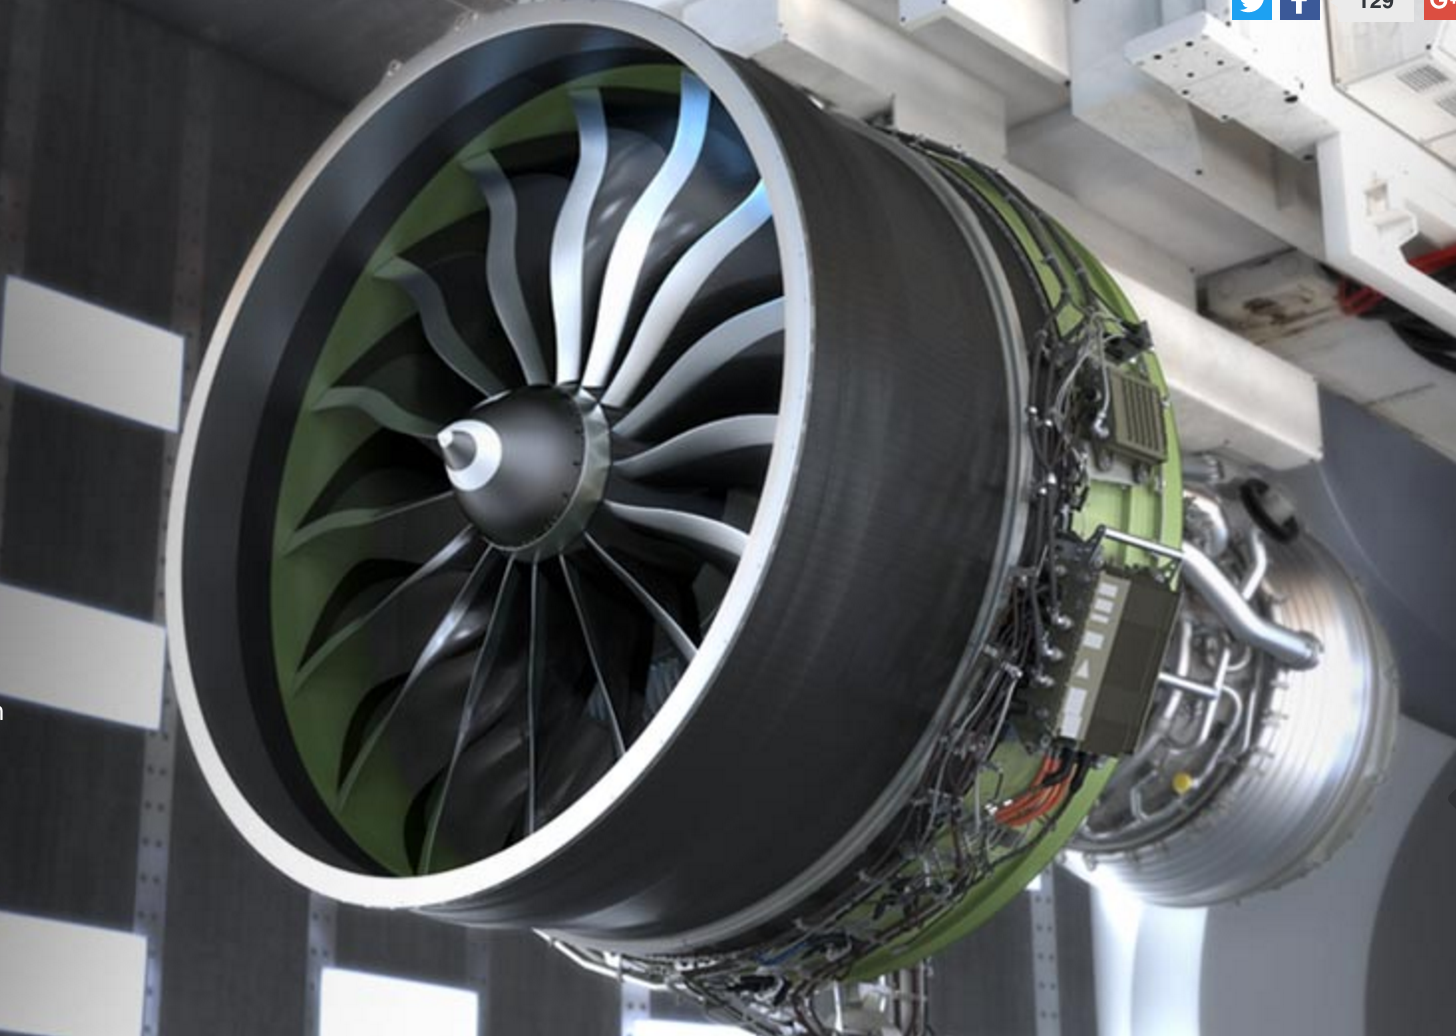 Fourth Generation Composites Used For The Blades Of The